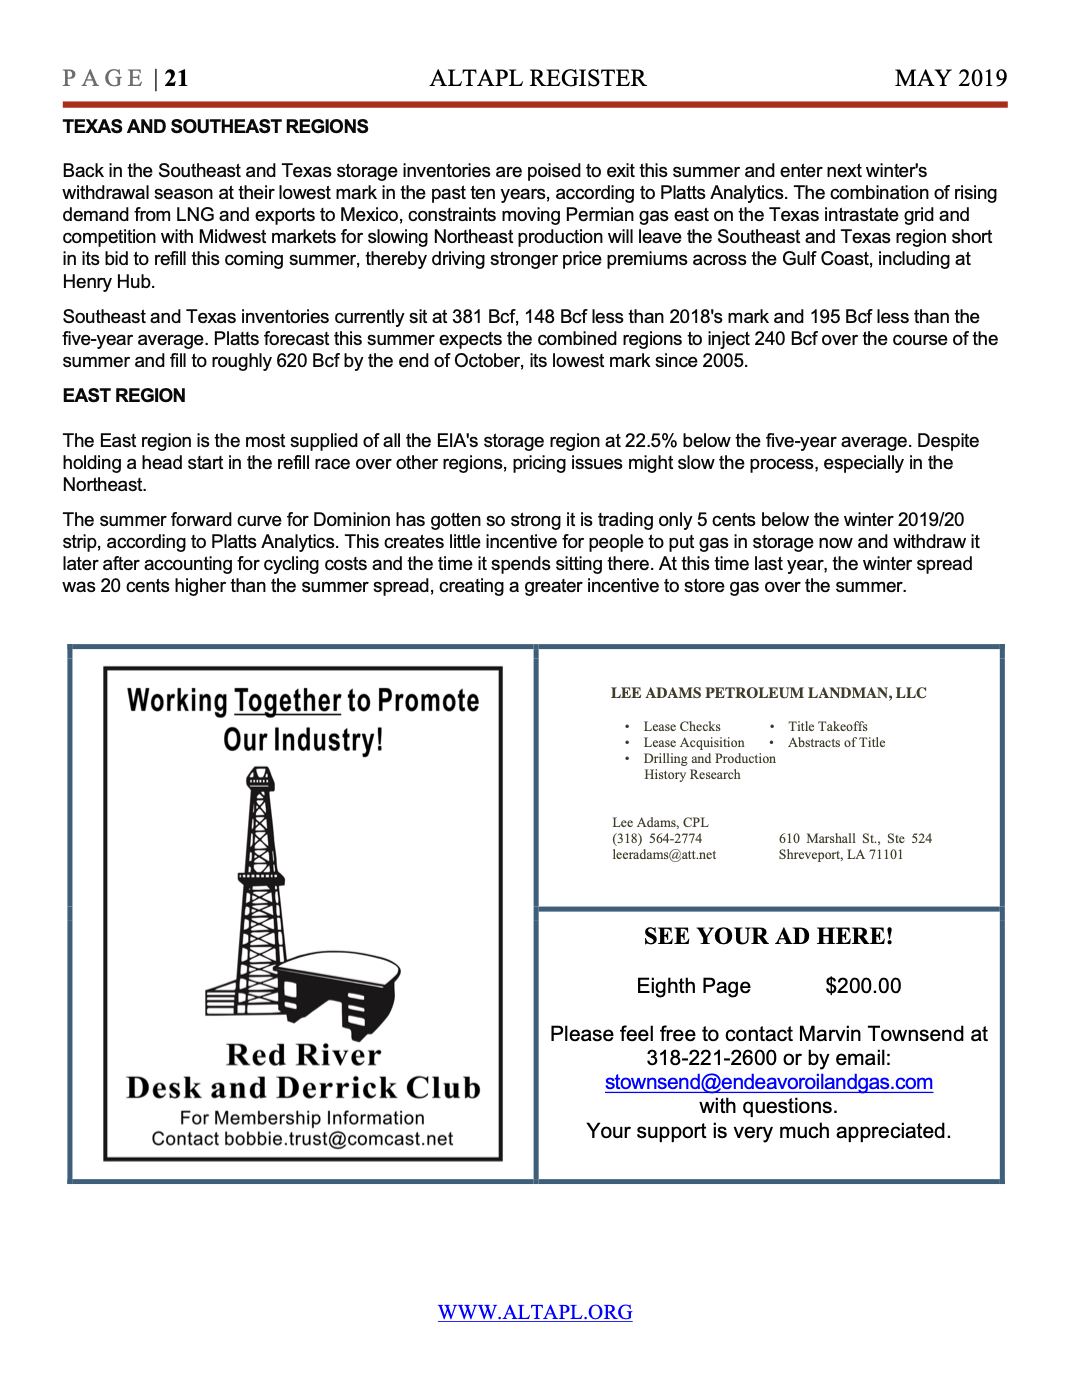 ALTAPL Register May 2019 Page 21.jpg